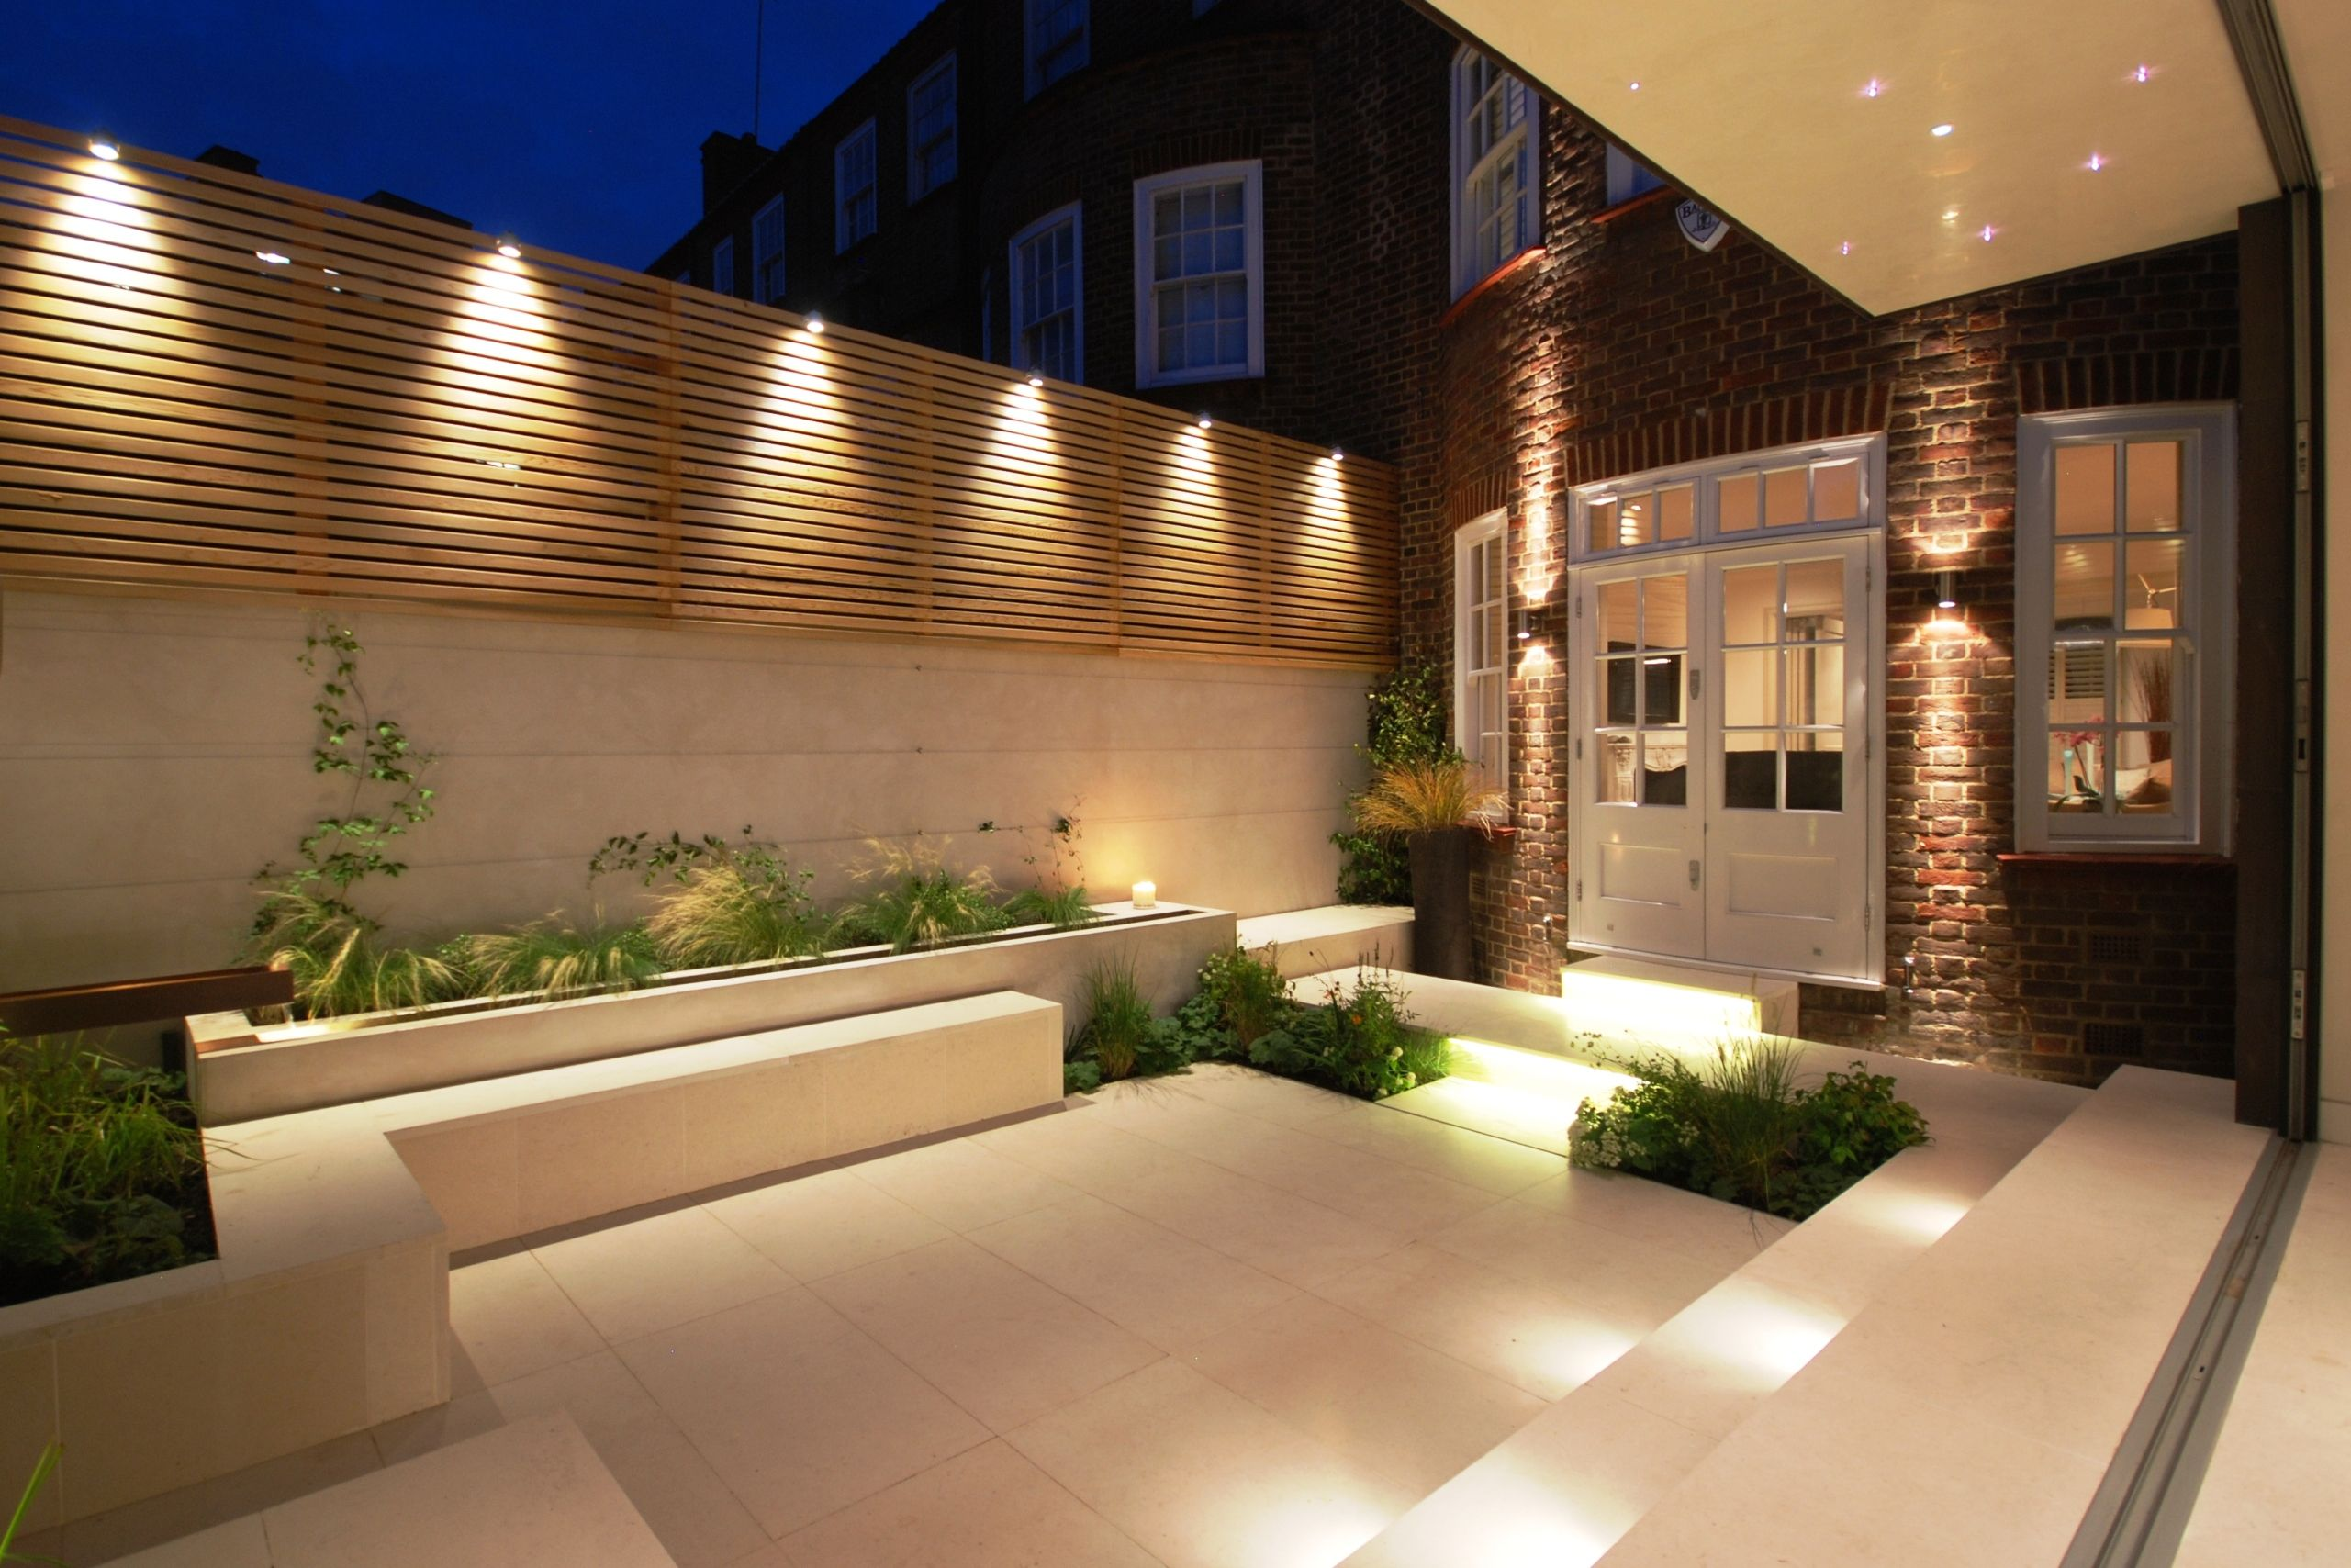 Minimalist Garden Lighting Ideas Courtyard Gardens Design Small Courtyard Gardens Modern Garden Lighting